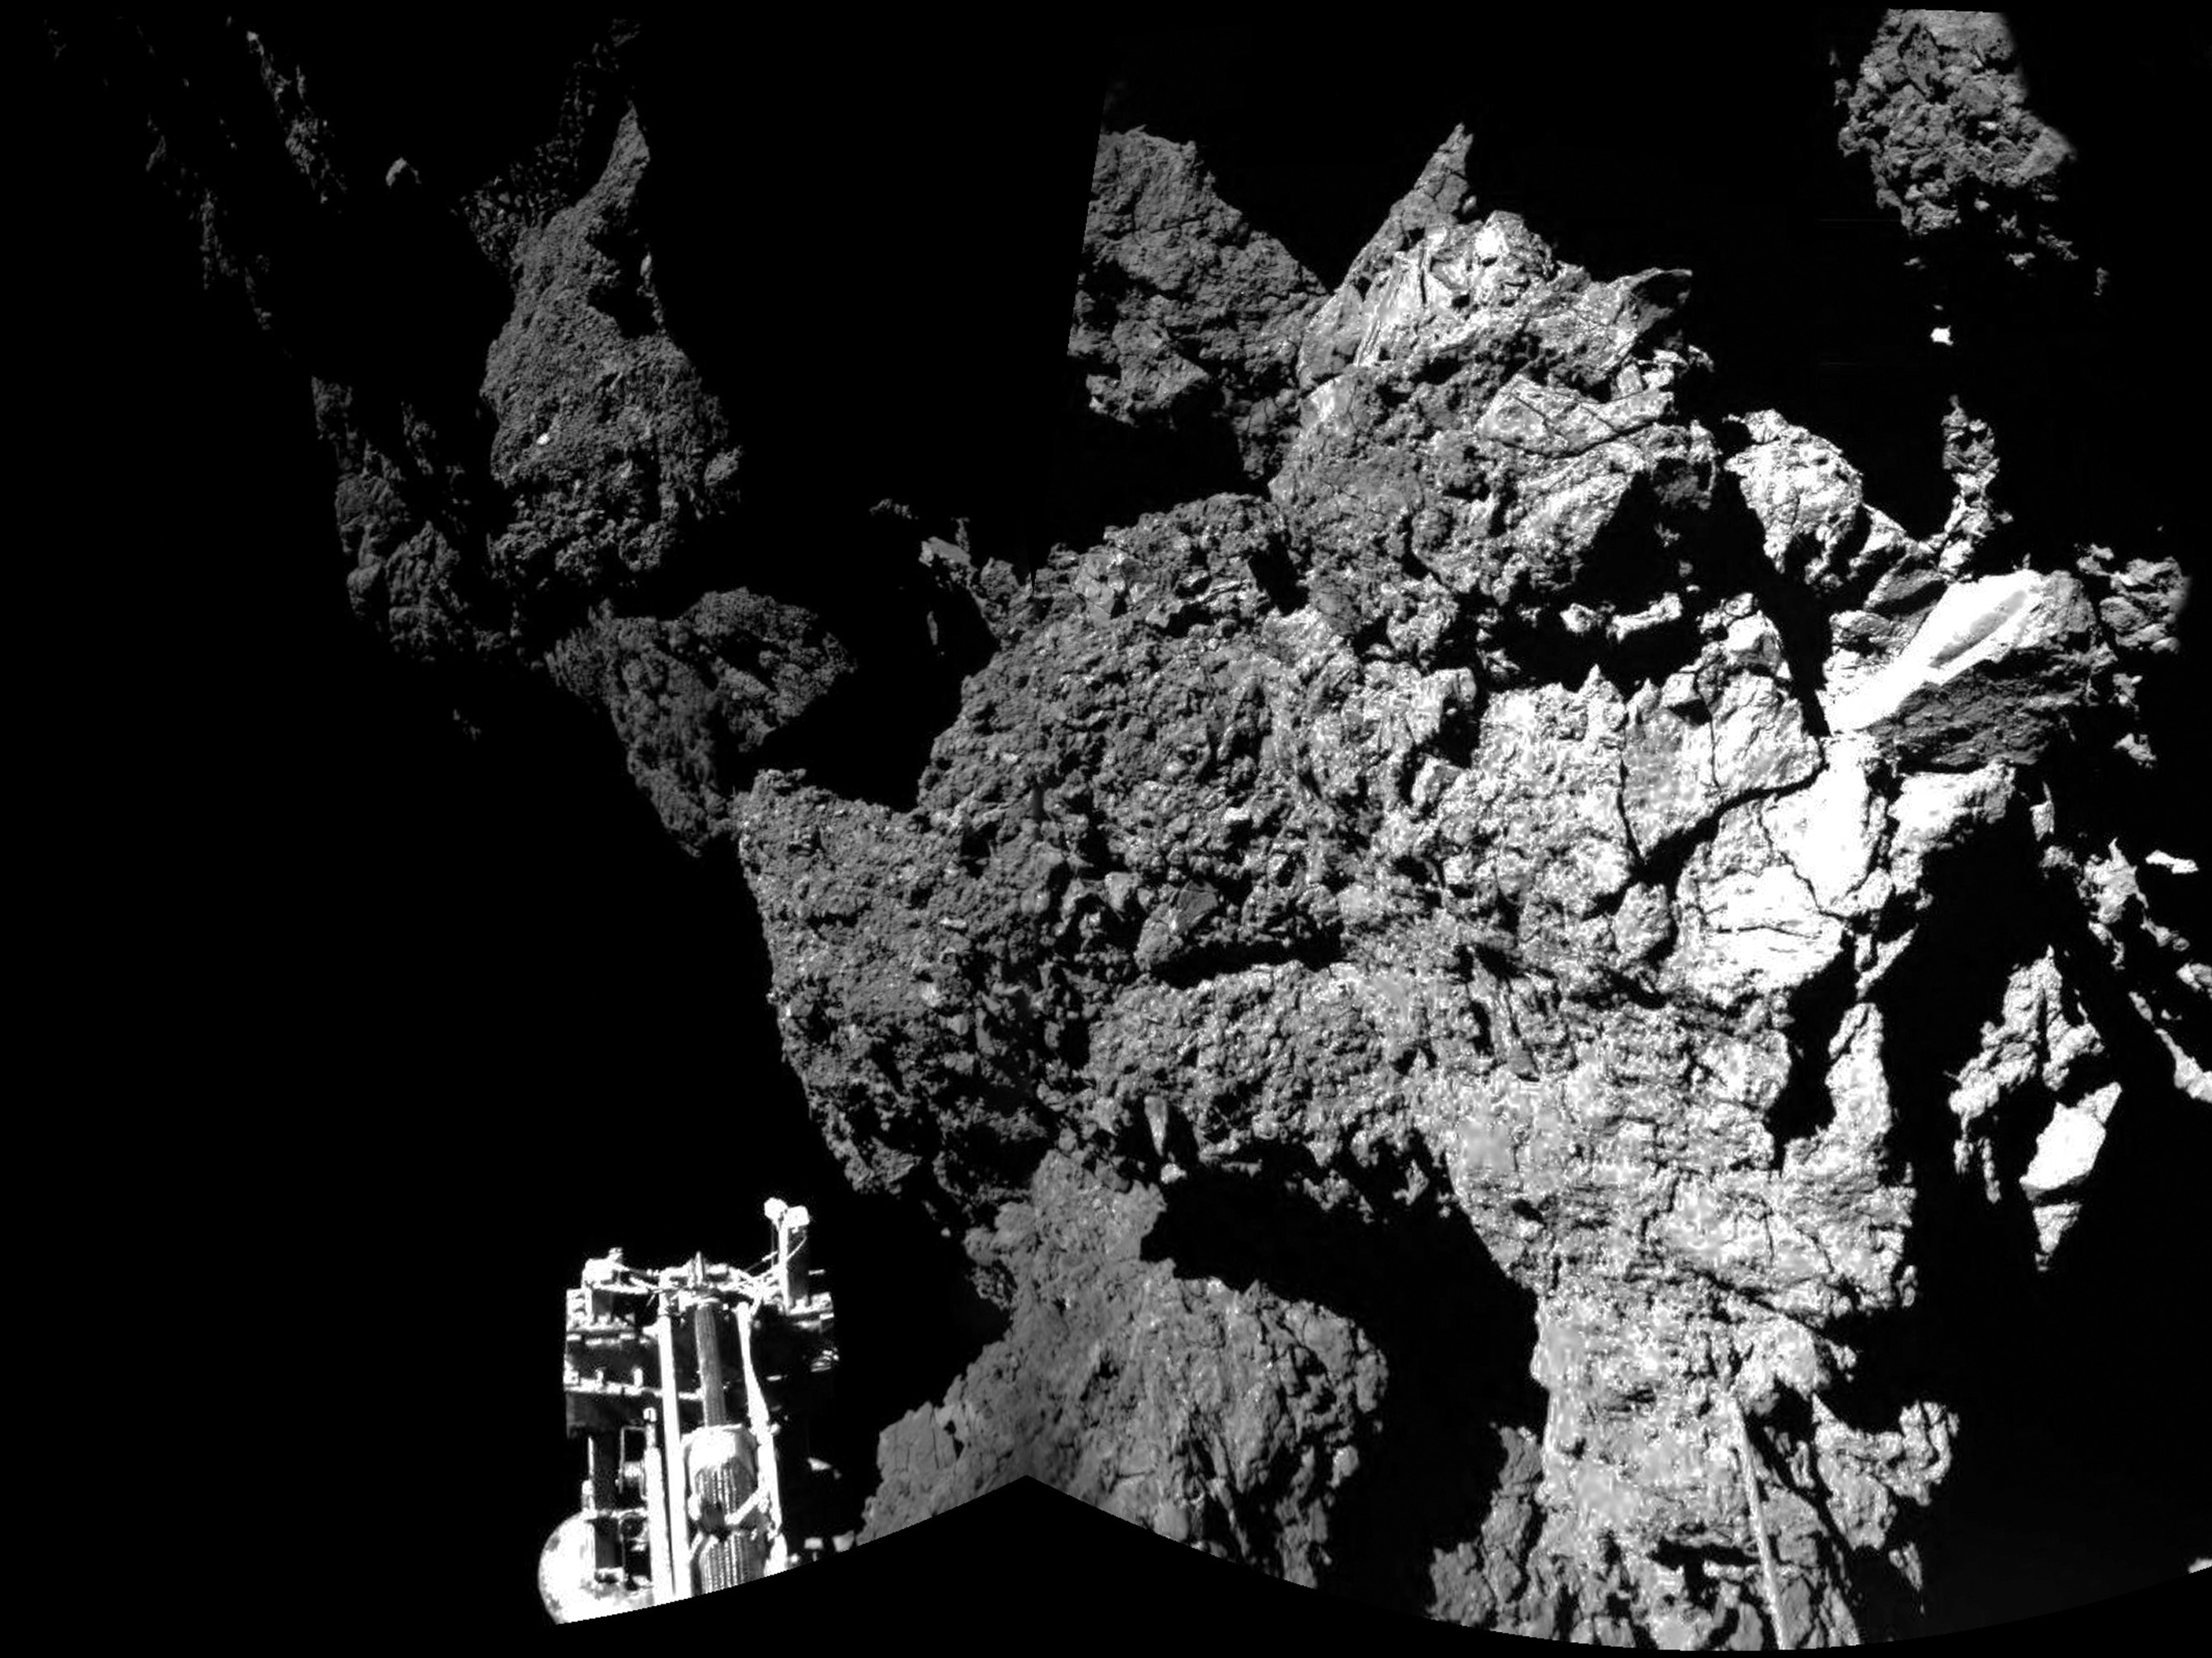 Farewell To Philae, the Comet Lander That Could